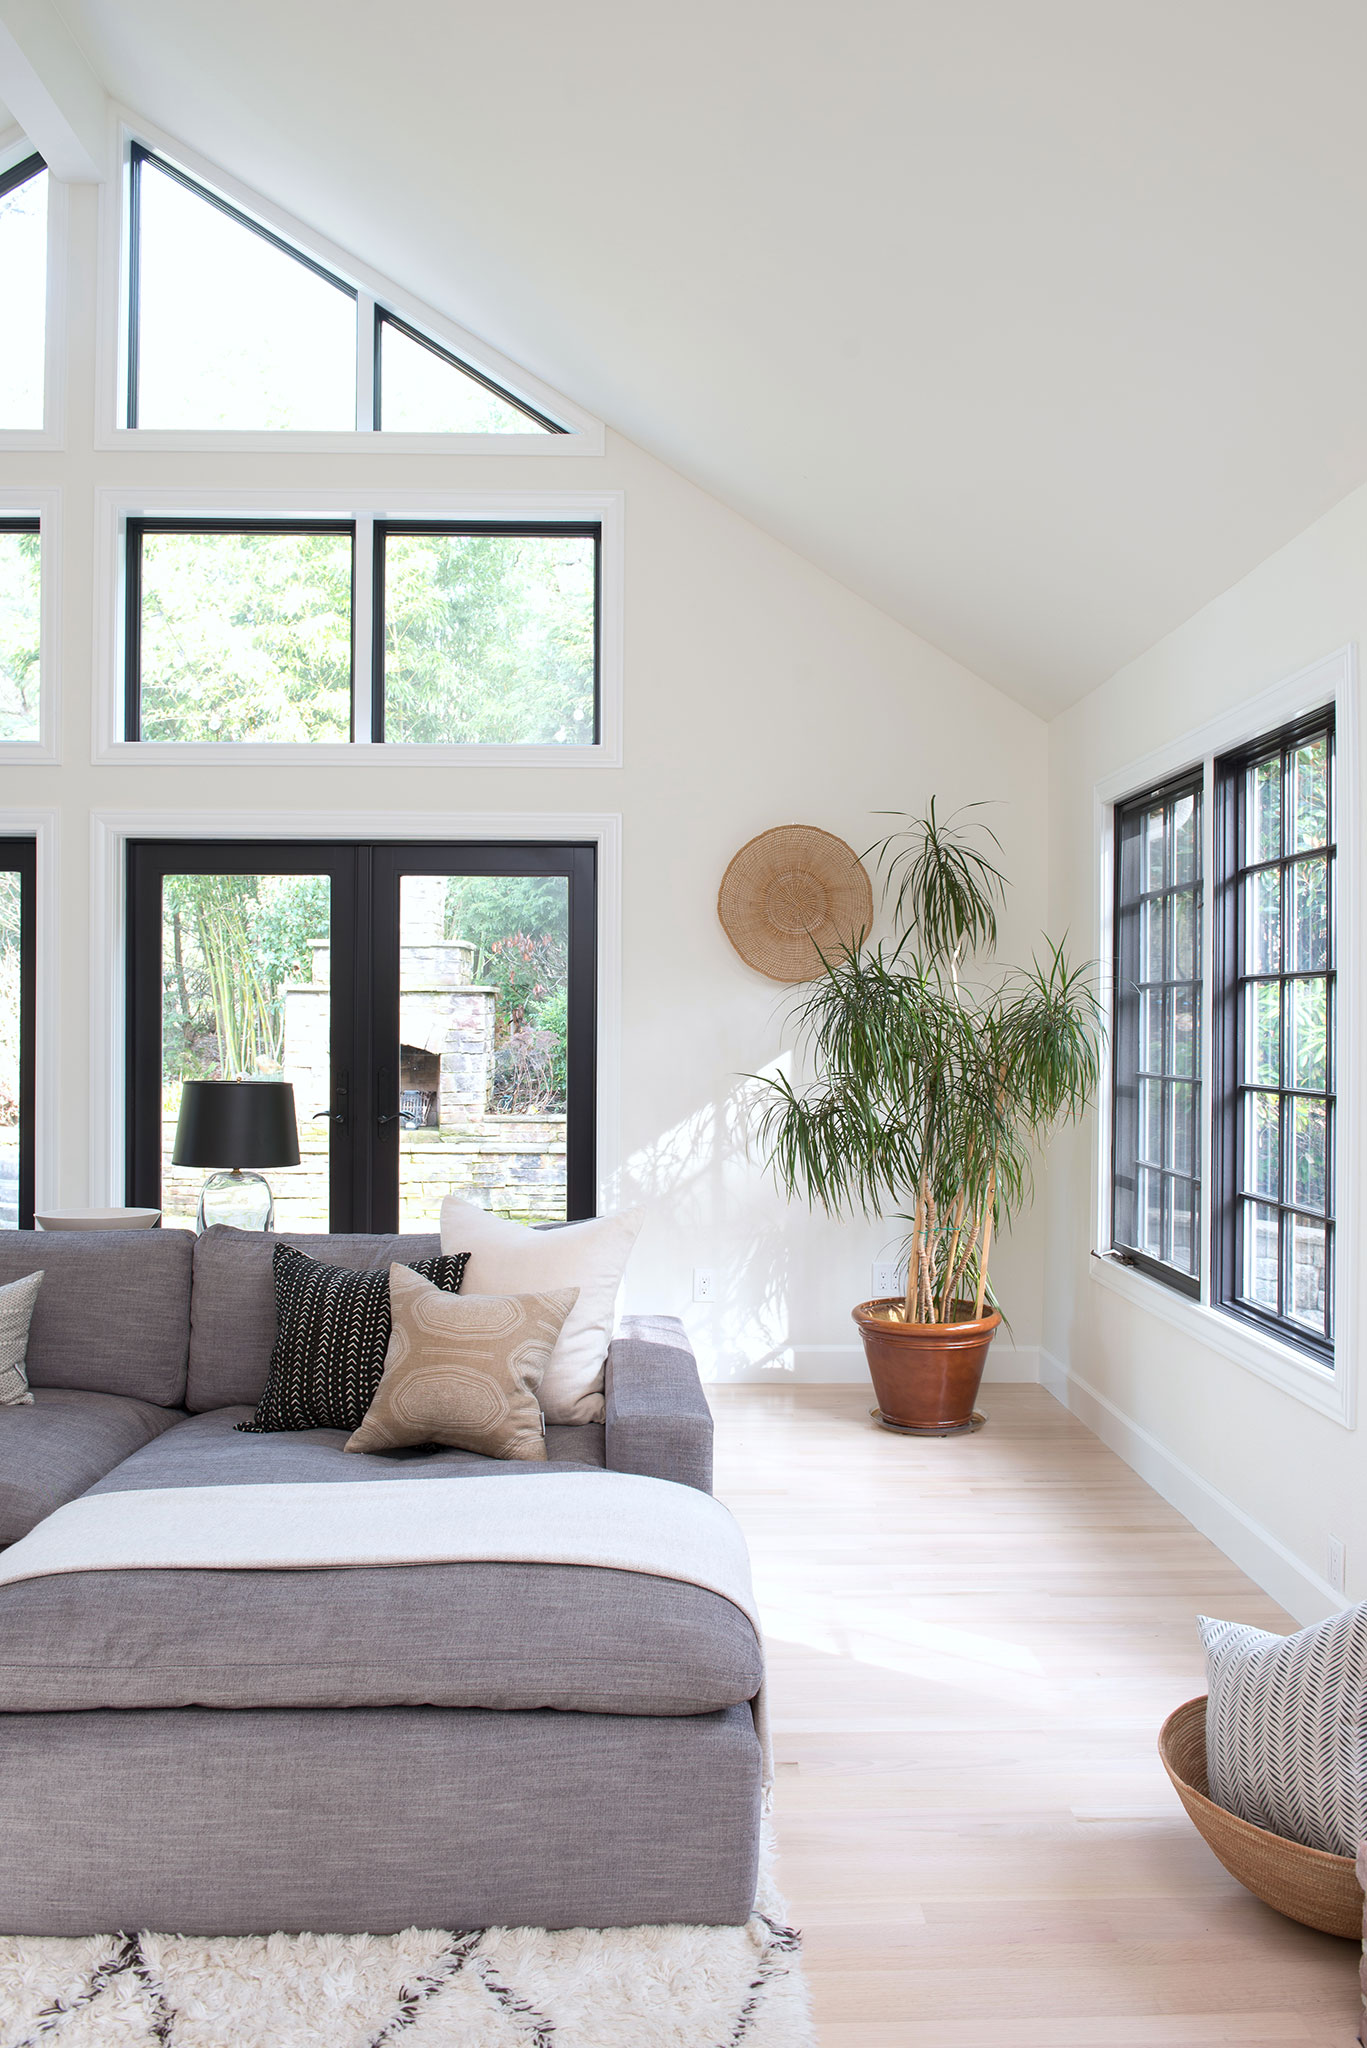 Northwest Hideaway | Amanda Steiner Design | Black Framed Windows